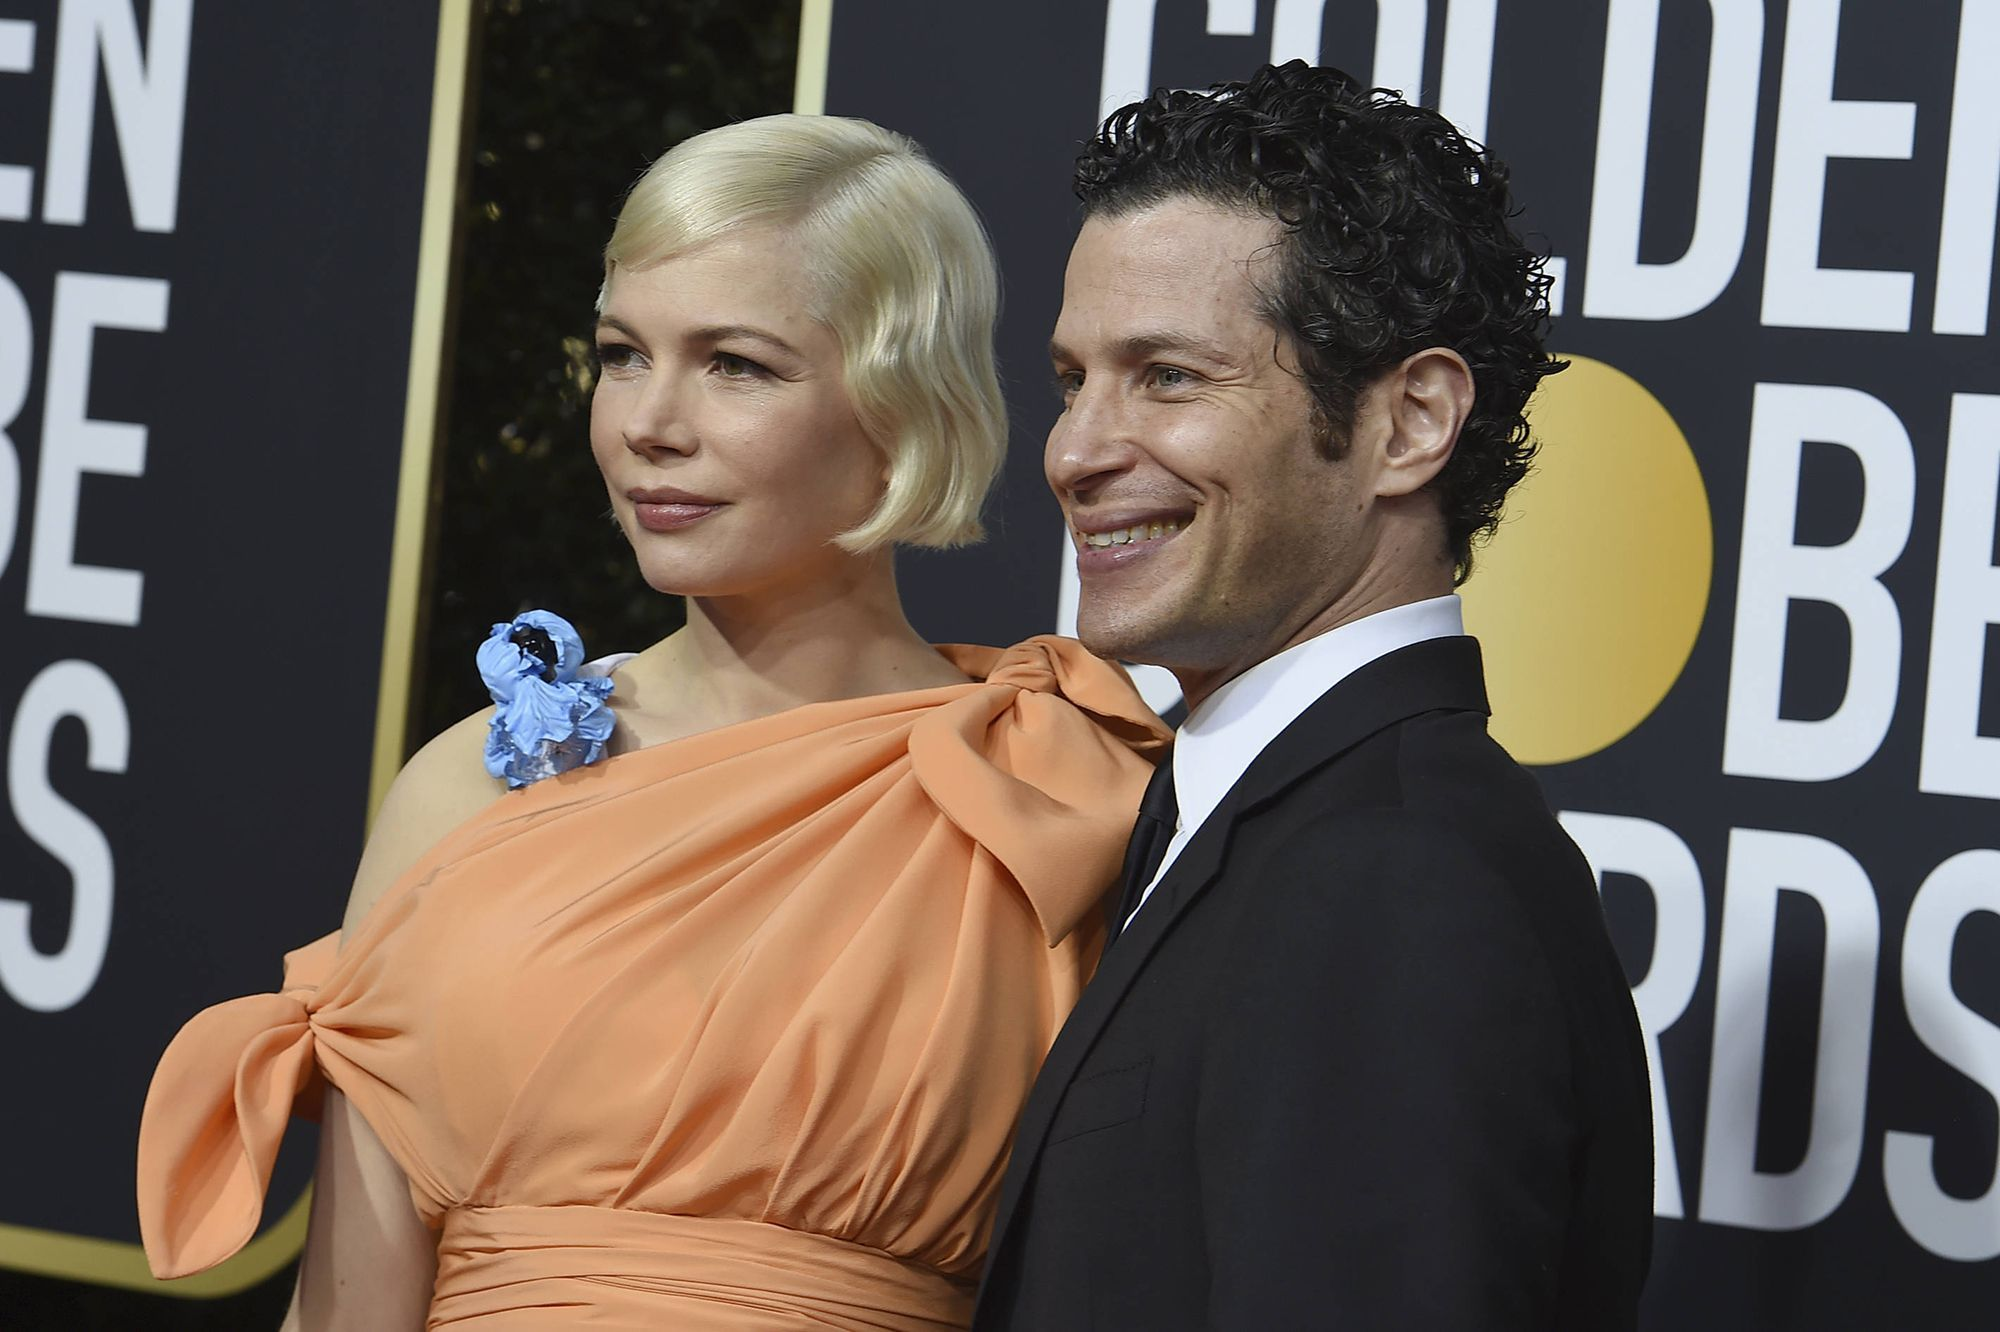 Michelle-Williams-enceinte-premier-tapis-rouge-avec-son-fiance-Thomas-Kail.jpg